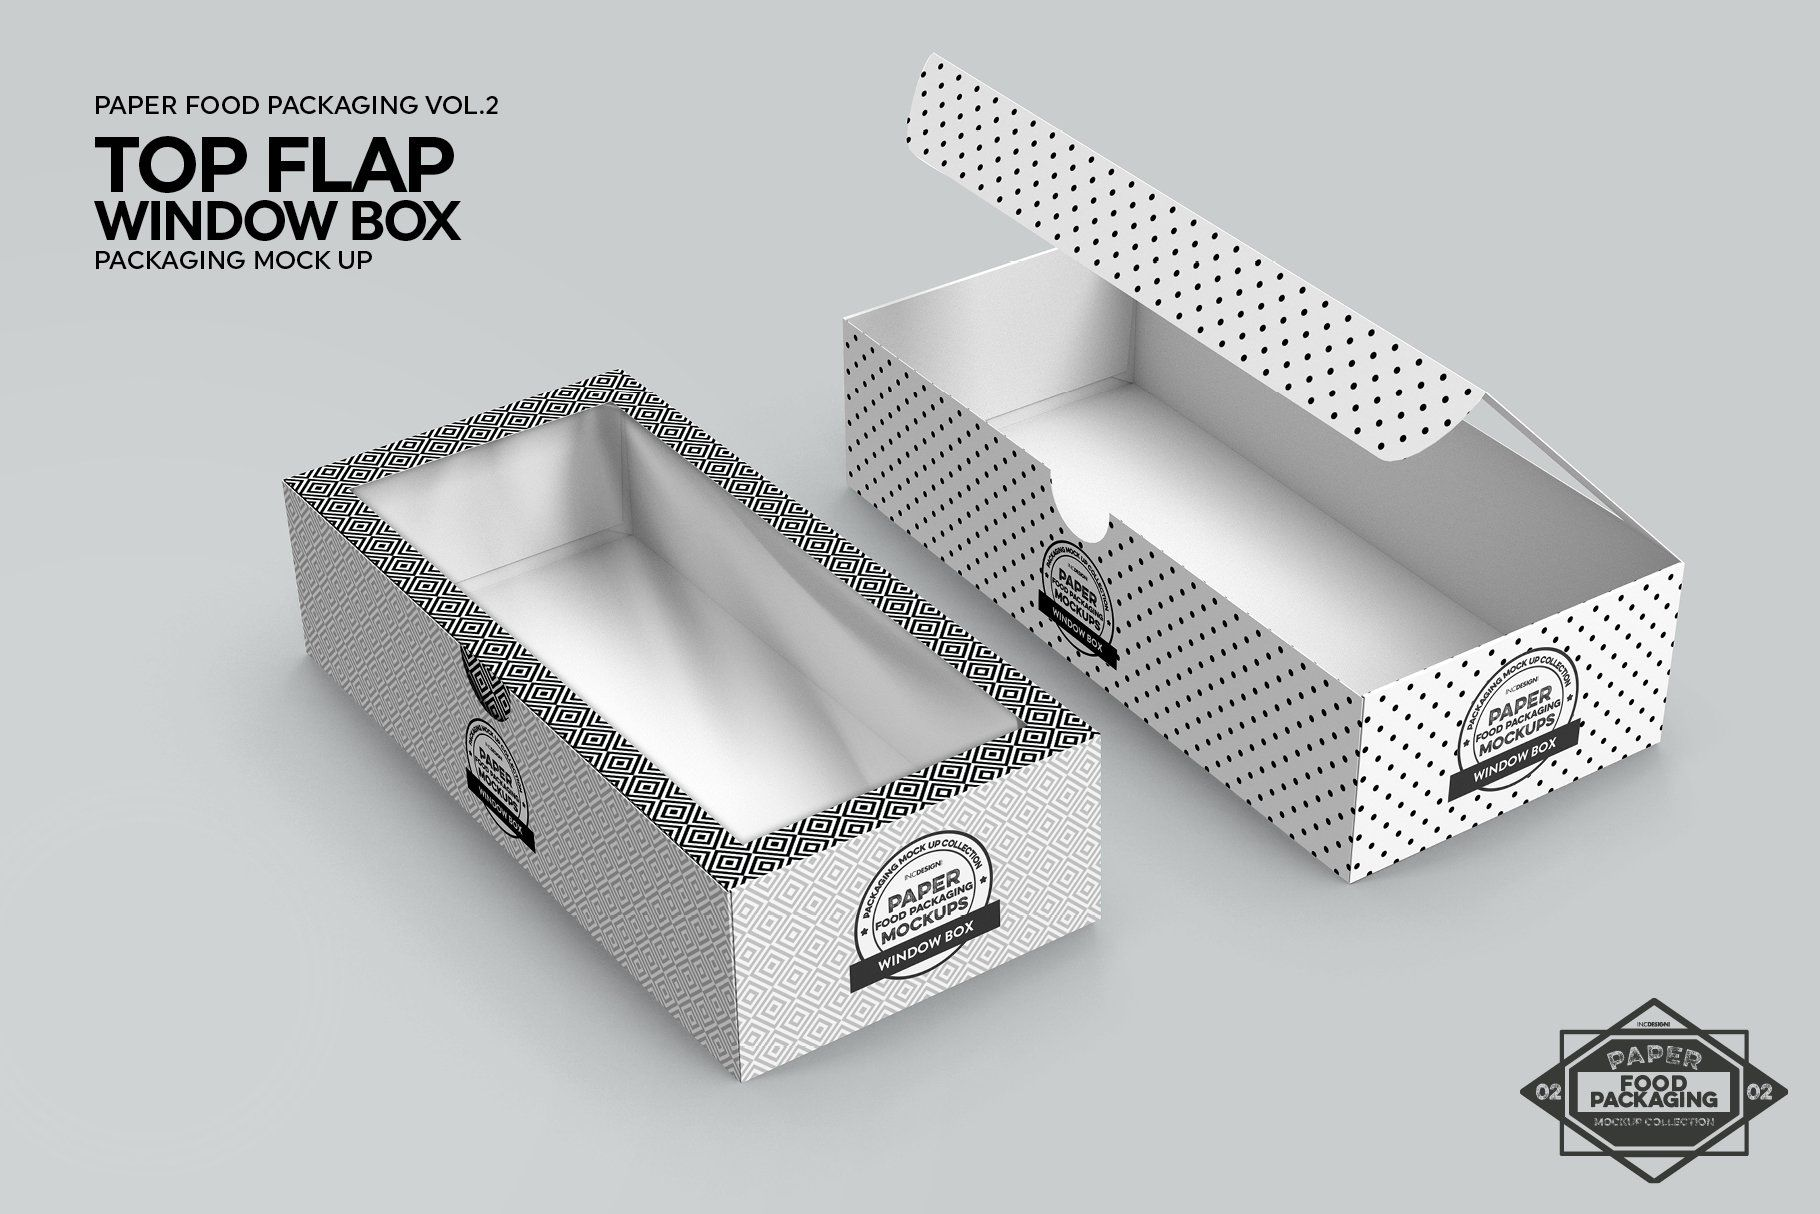 Download Top Flap Window Box Packaging Mockup Packaging Mockup Box Packaging Food Box Packaging